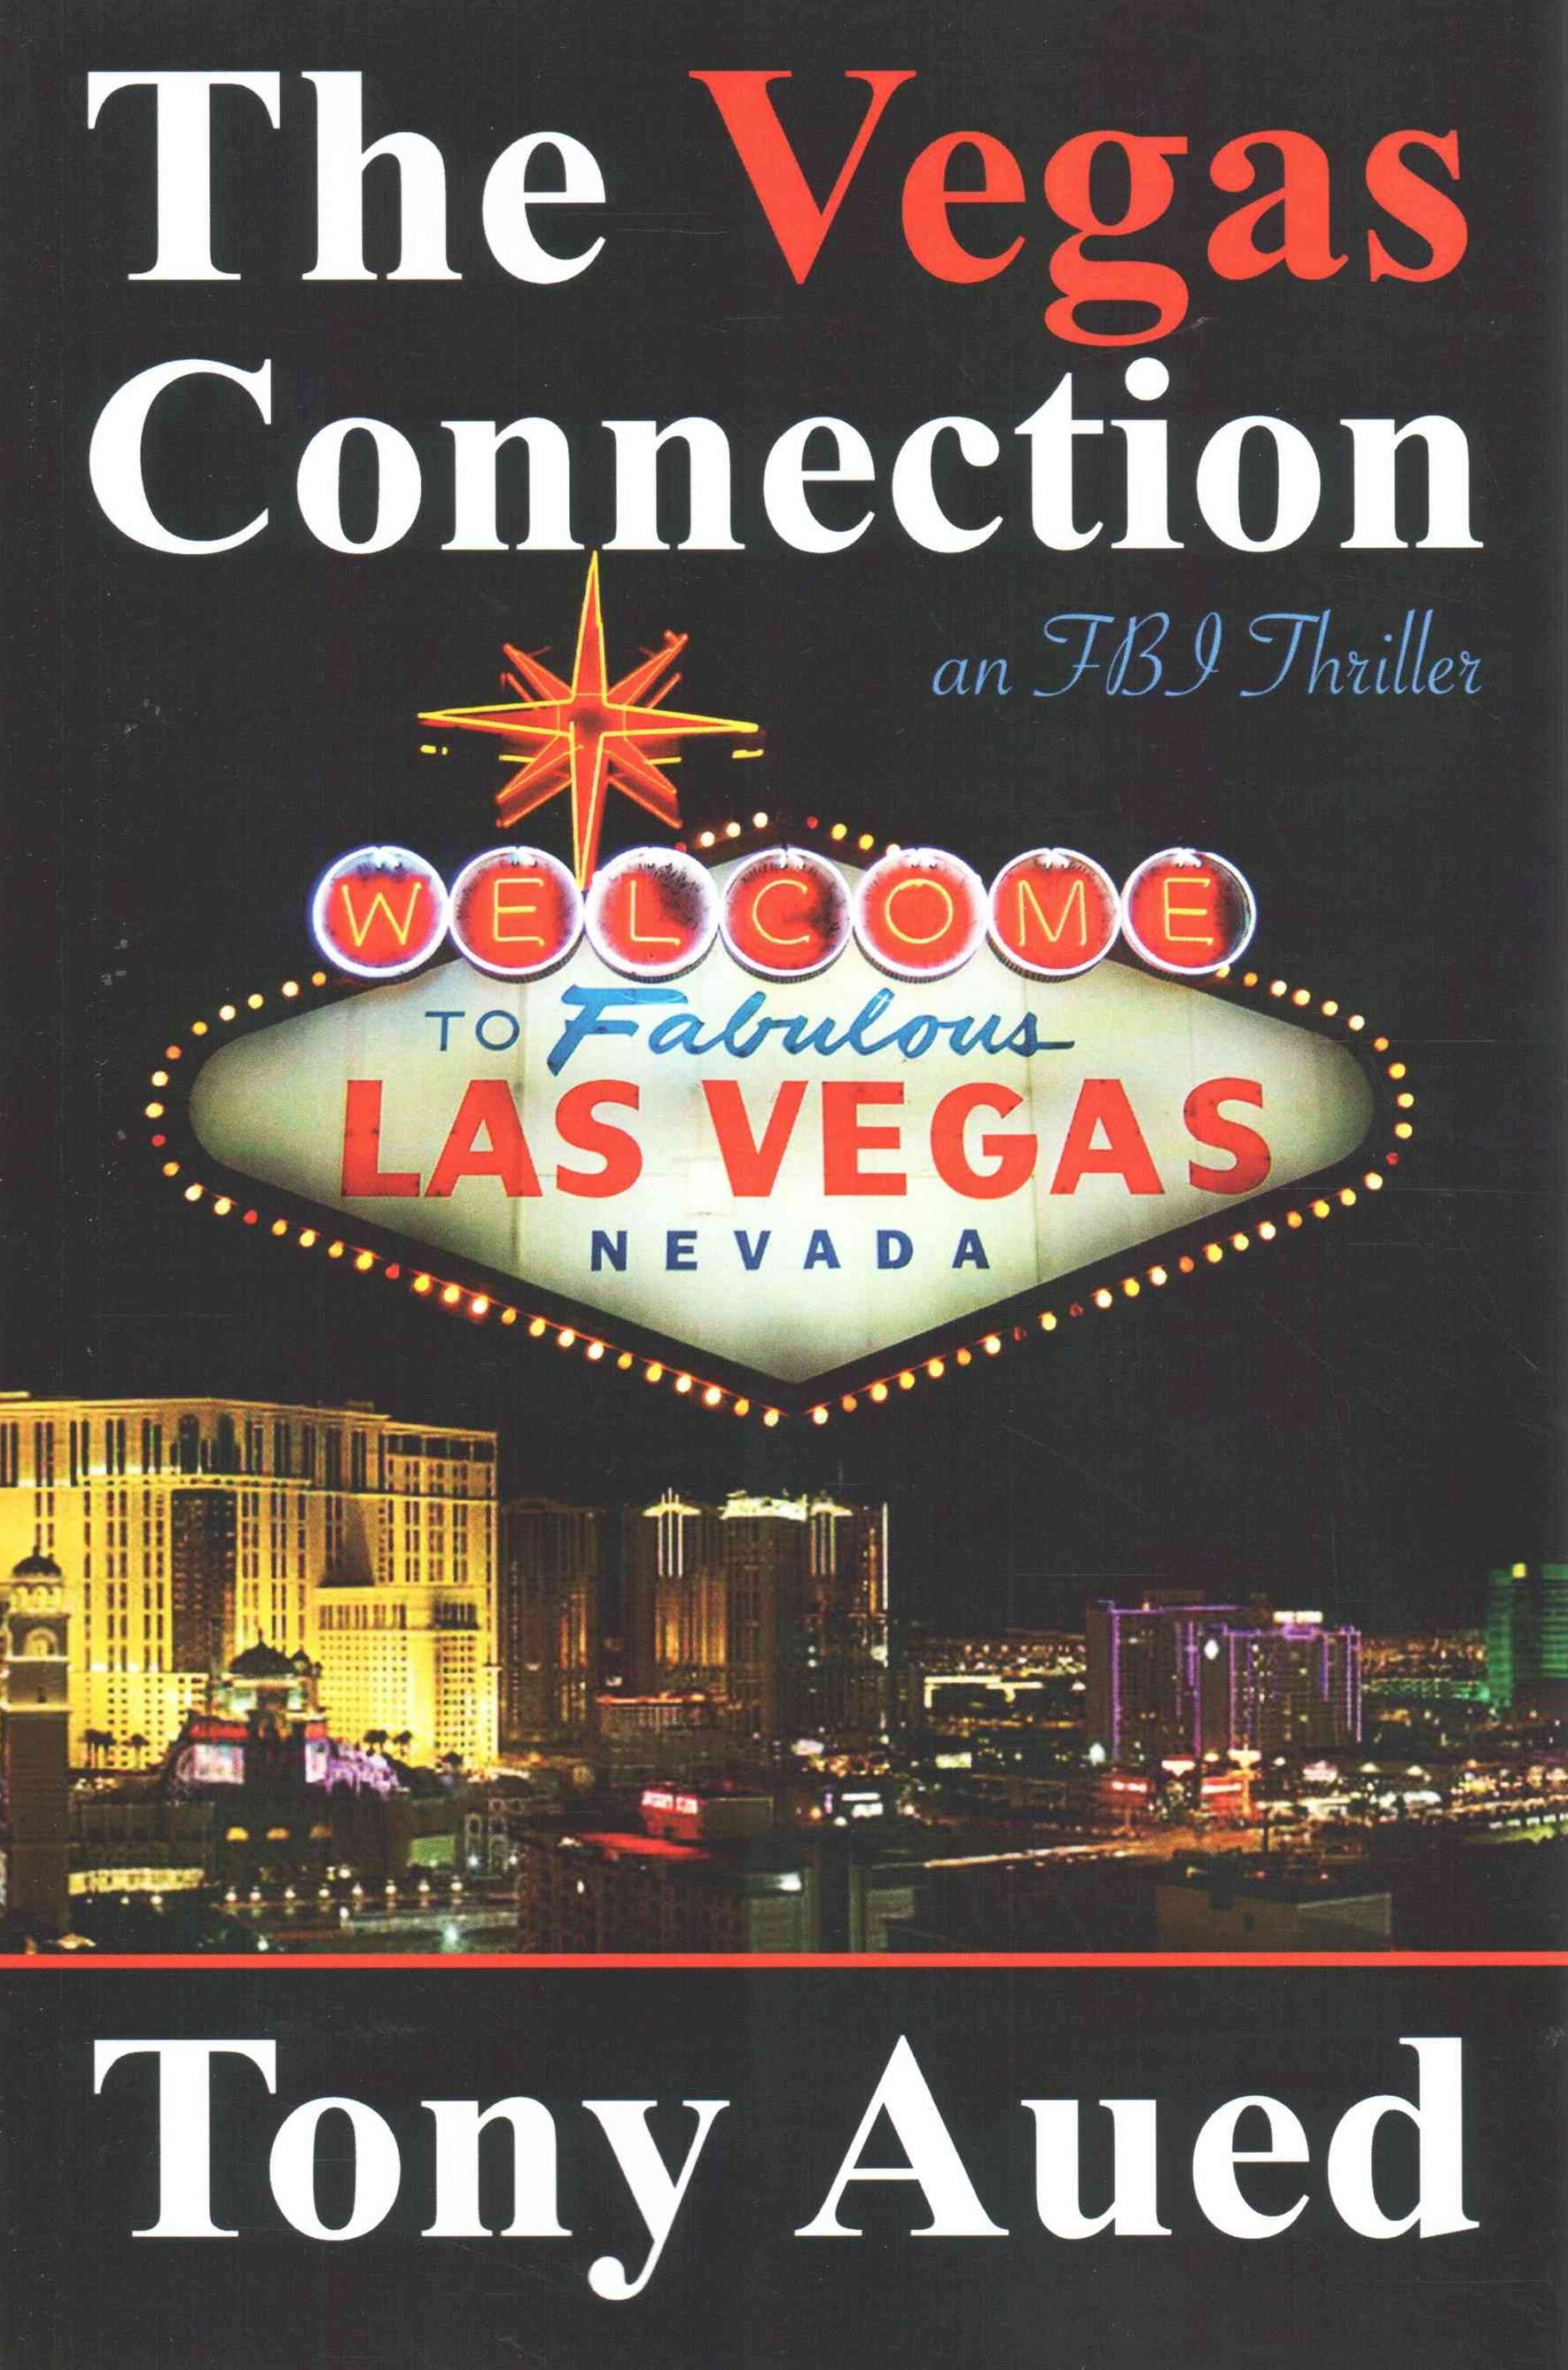 The Vegas Connection